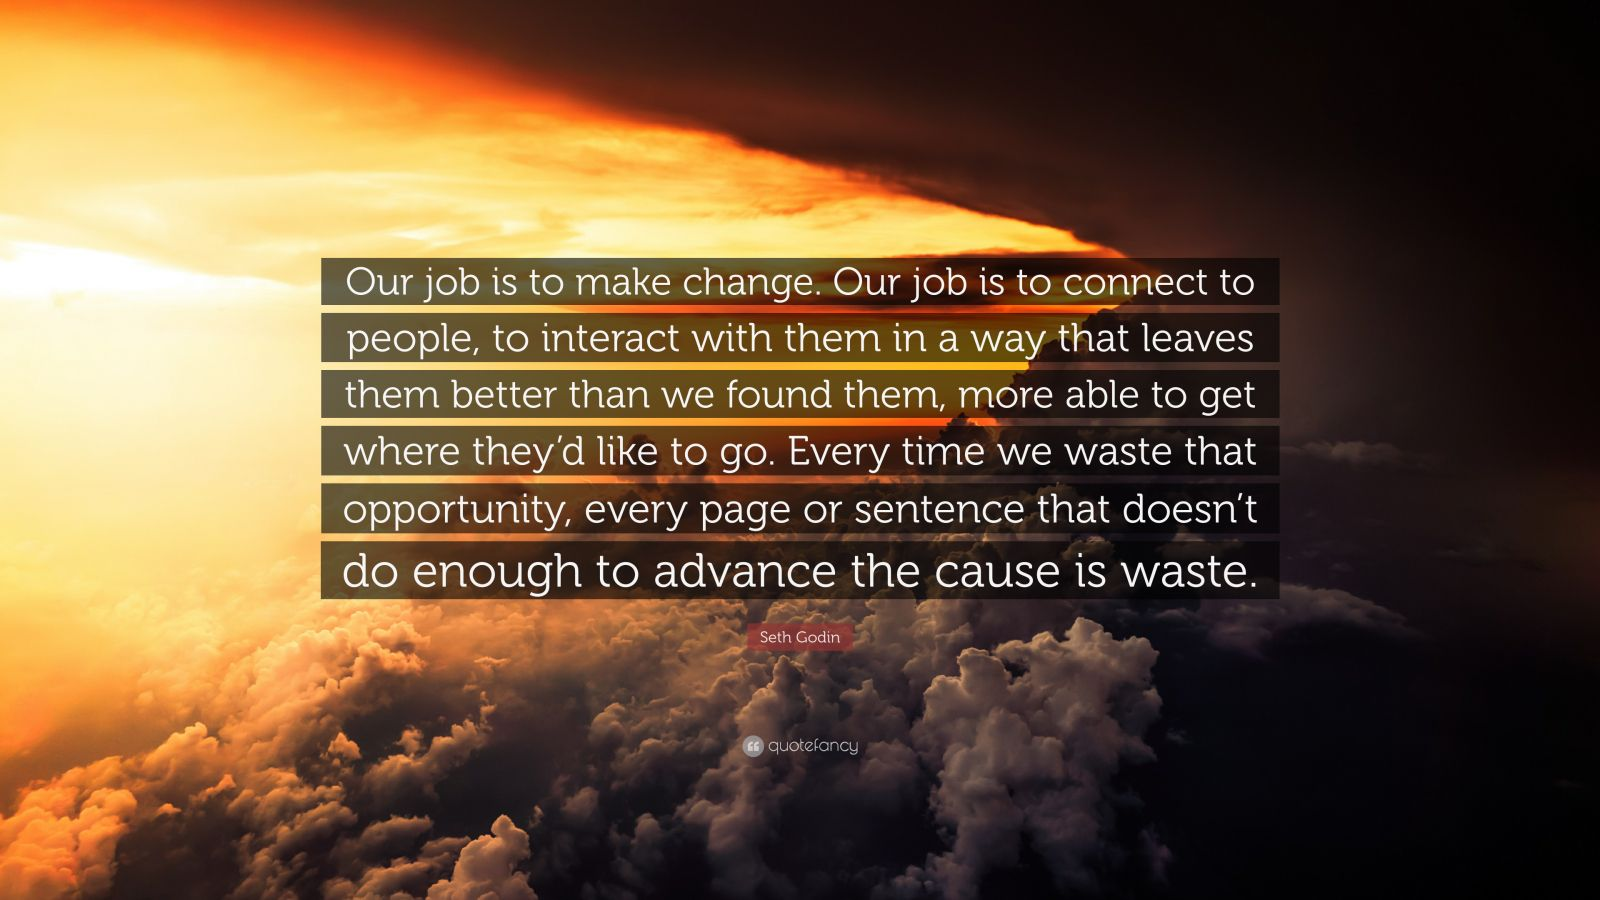 "Seth Godin Quote: ""Our job is to make change. Our job is to connect to people, to interact with them in a way that leaves them better than we found them, more able to get where they'd like to go. Every time we waste that opportunity, every page or sentence that doesn't do enough to advance the cause is waste."""